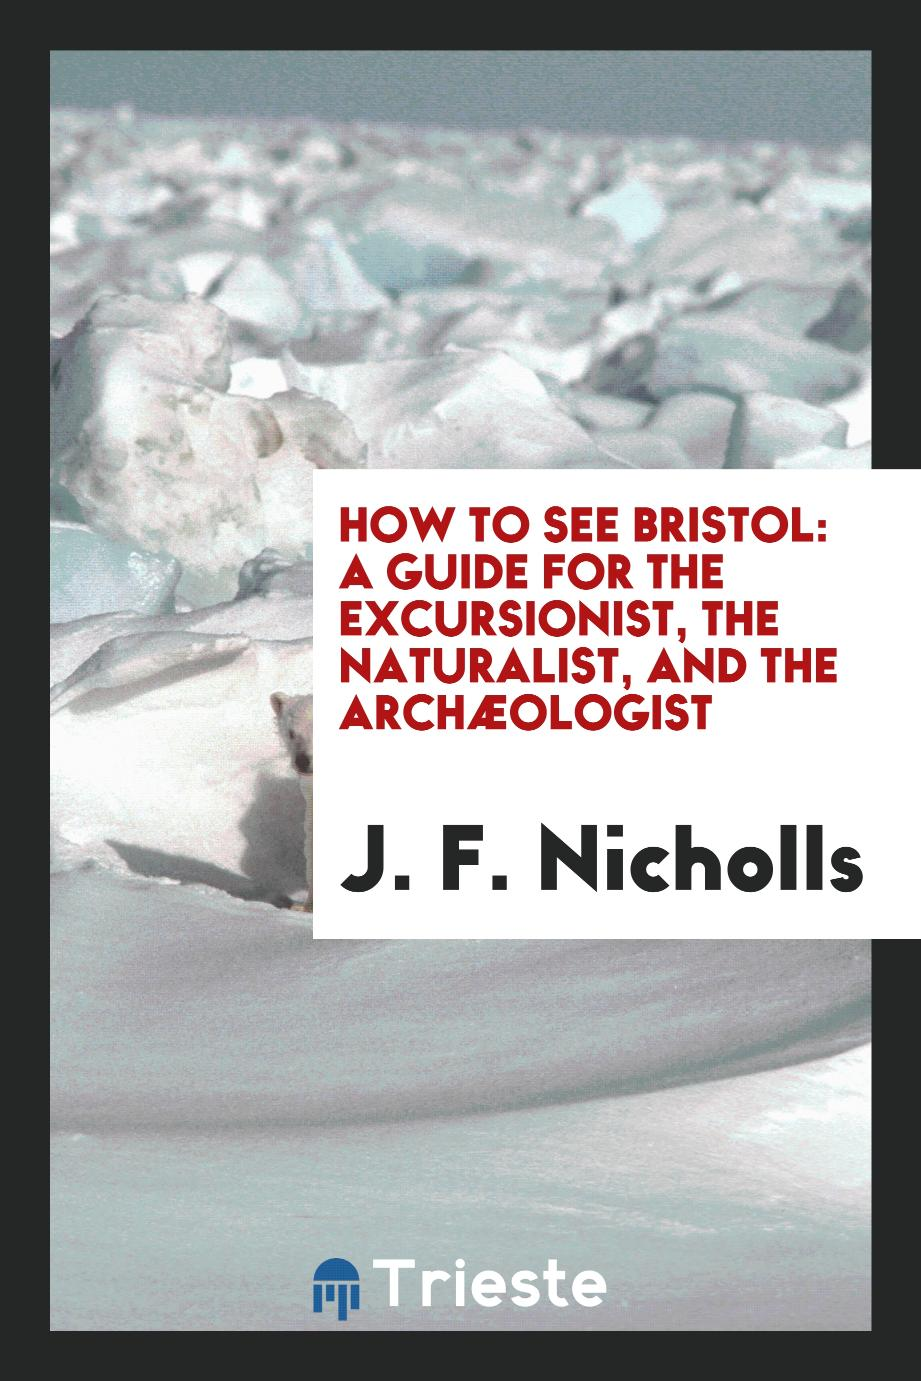 How to See Bristol: A Guide for the Excursionist, the Naturalist, and the Archæologist